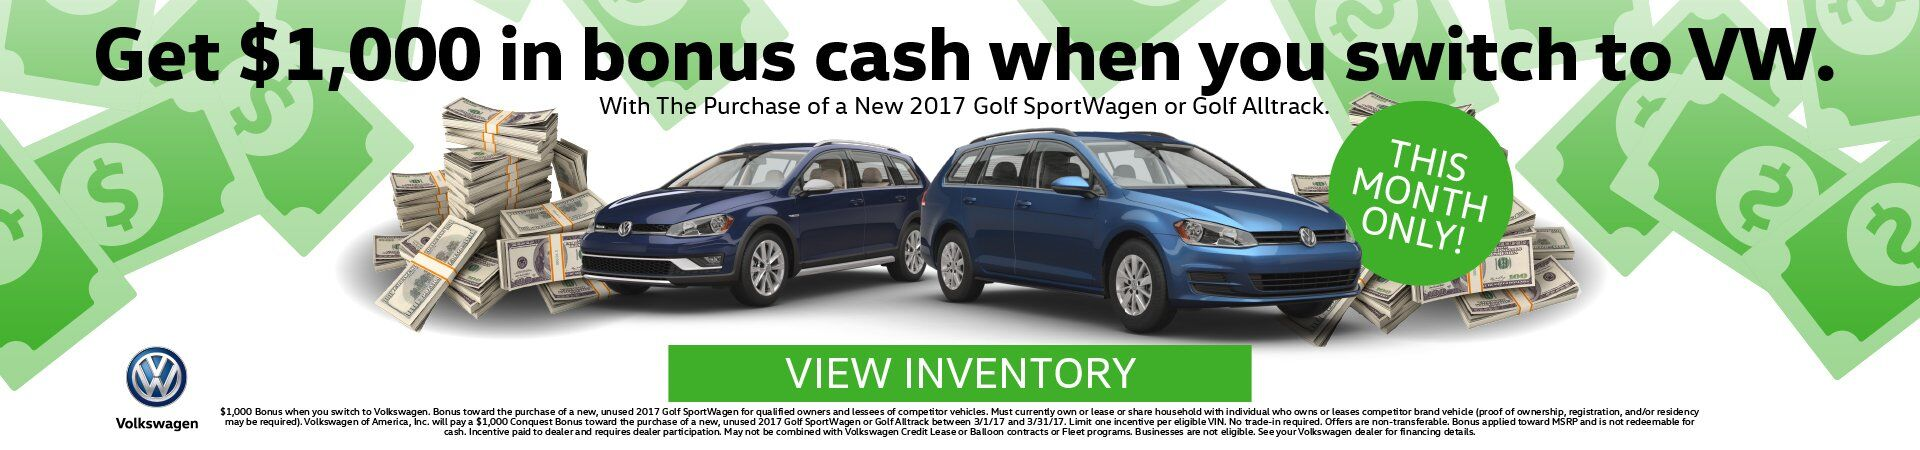 March 2017 Sportwagen Bonus Cash